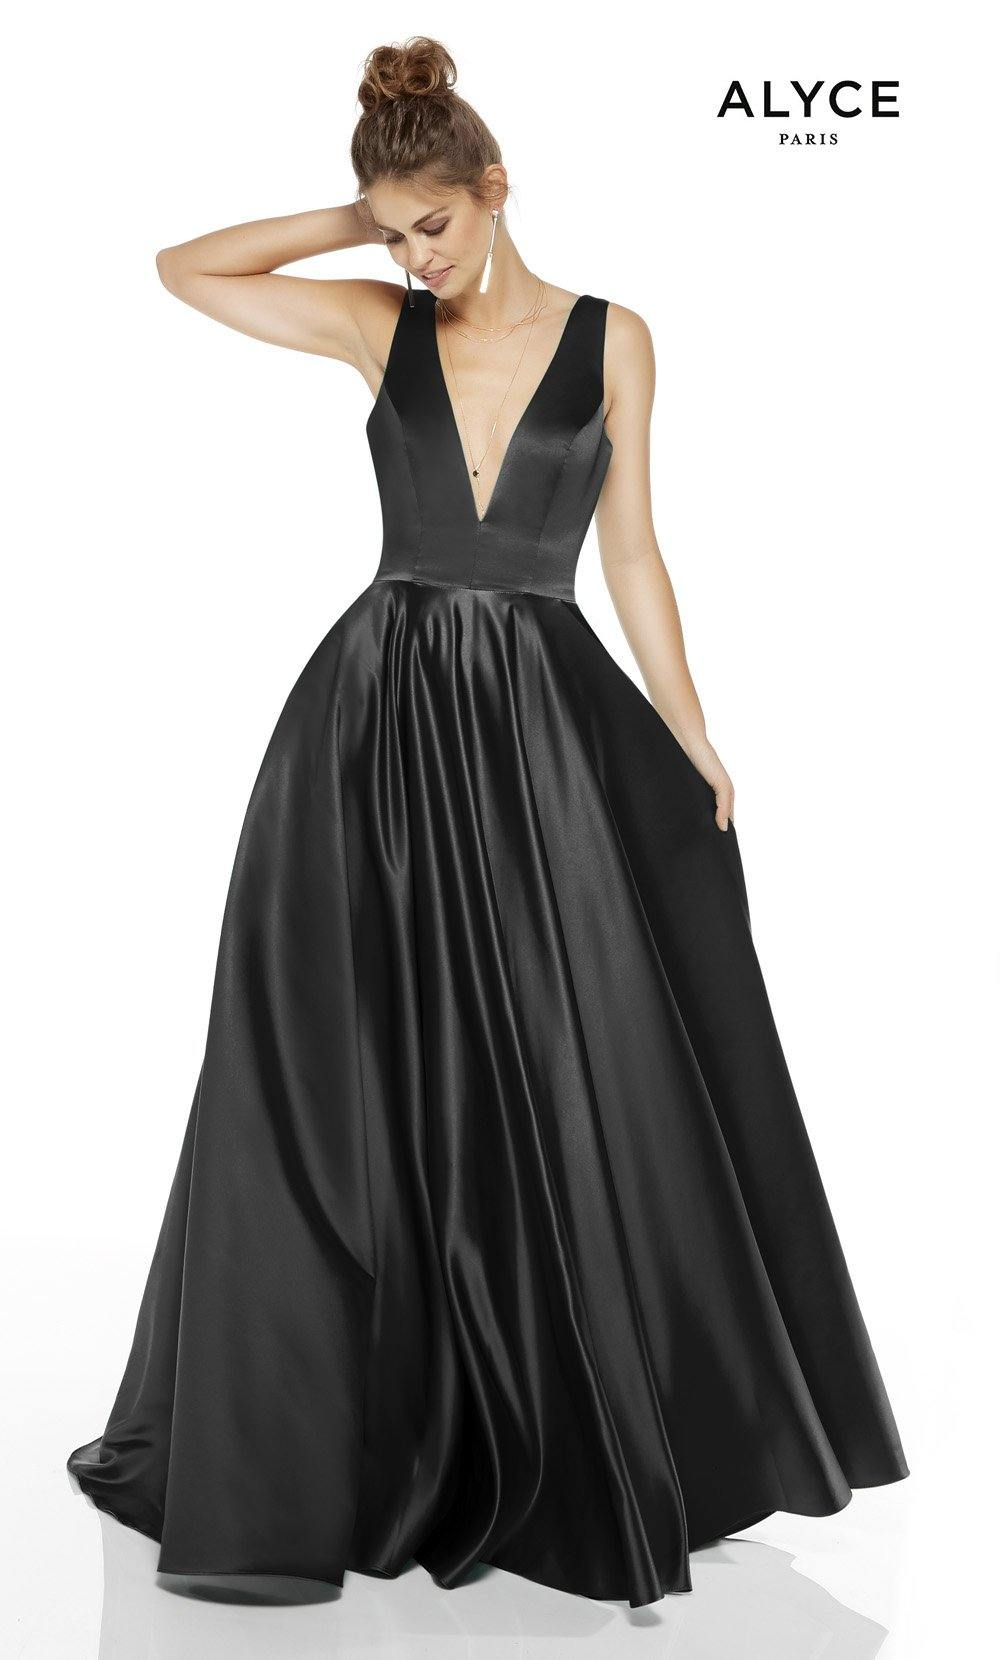 Black formal dress with a plunging neckline